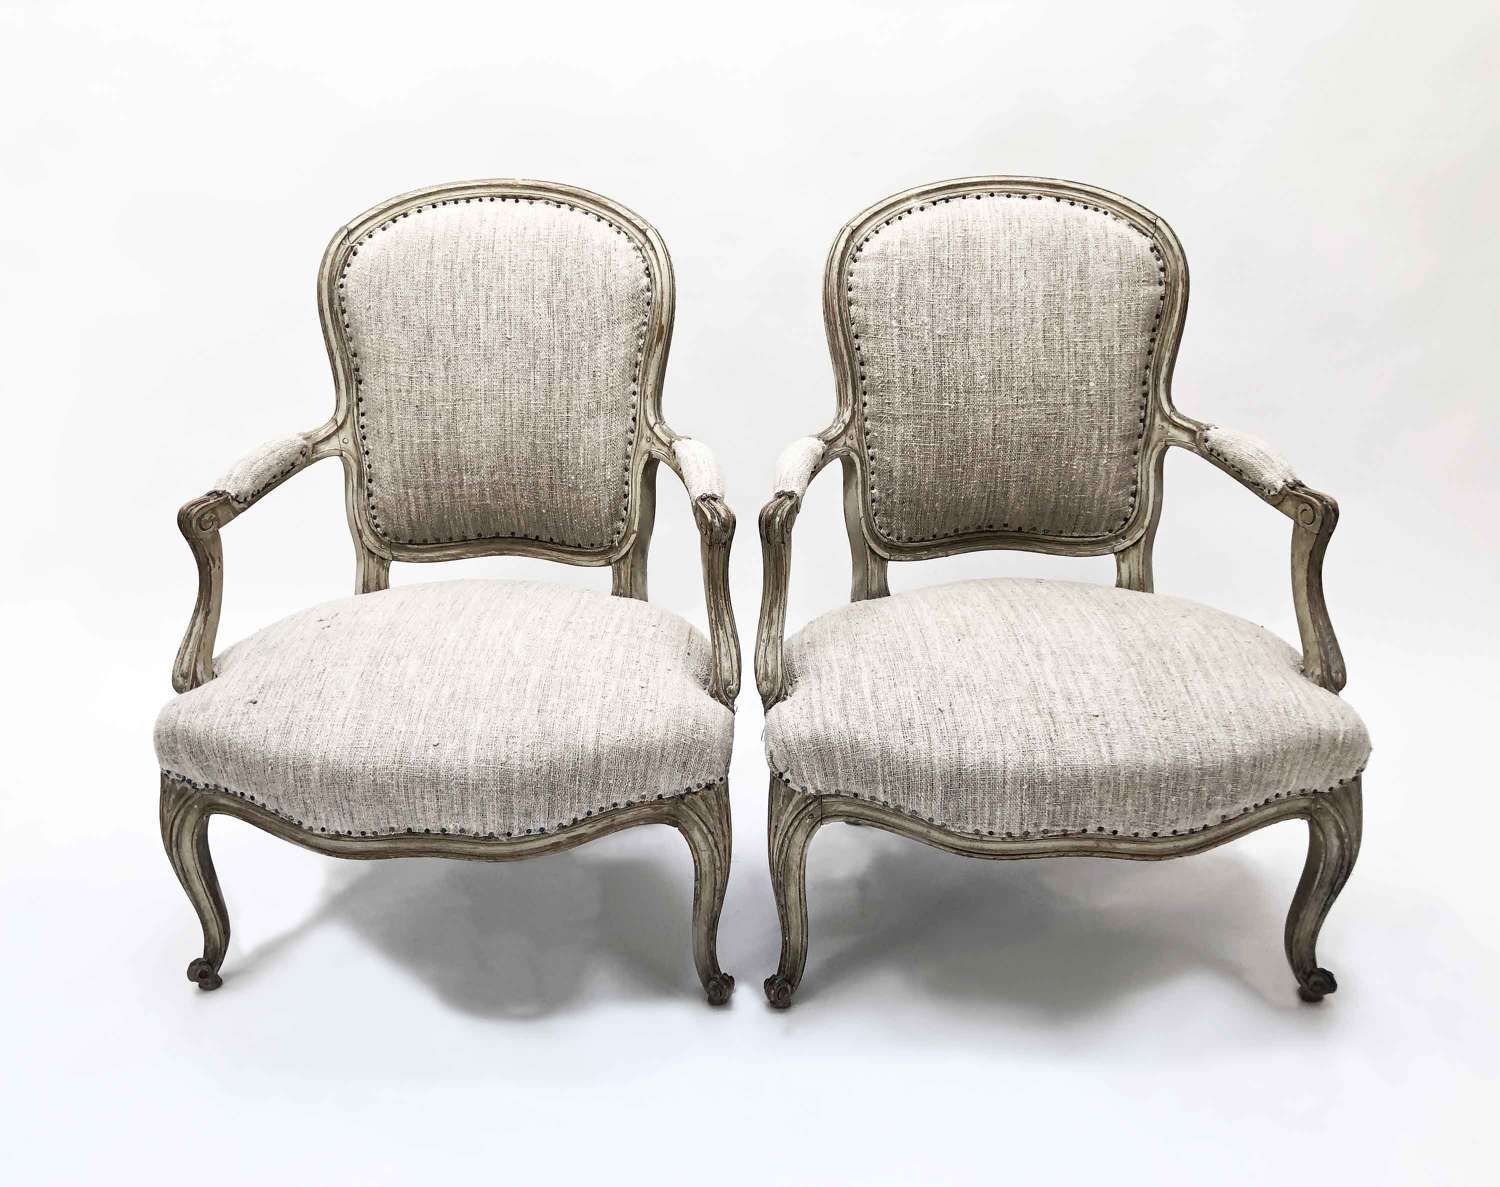 Pair of Louis XV Fauteuils with Antique Hemp covering - Circa 1750